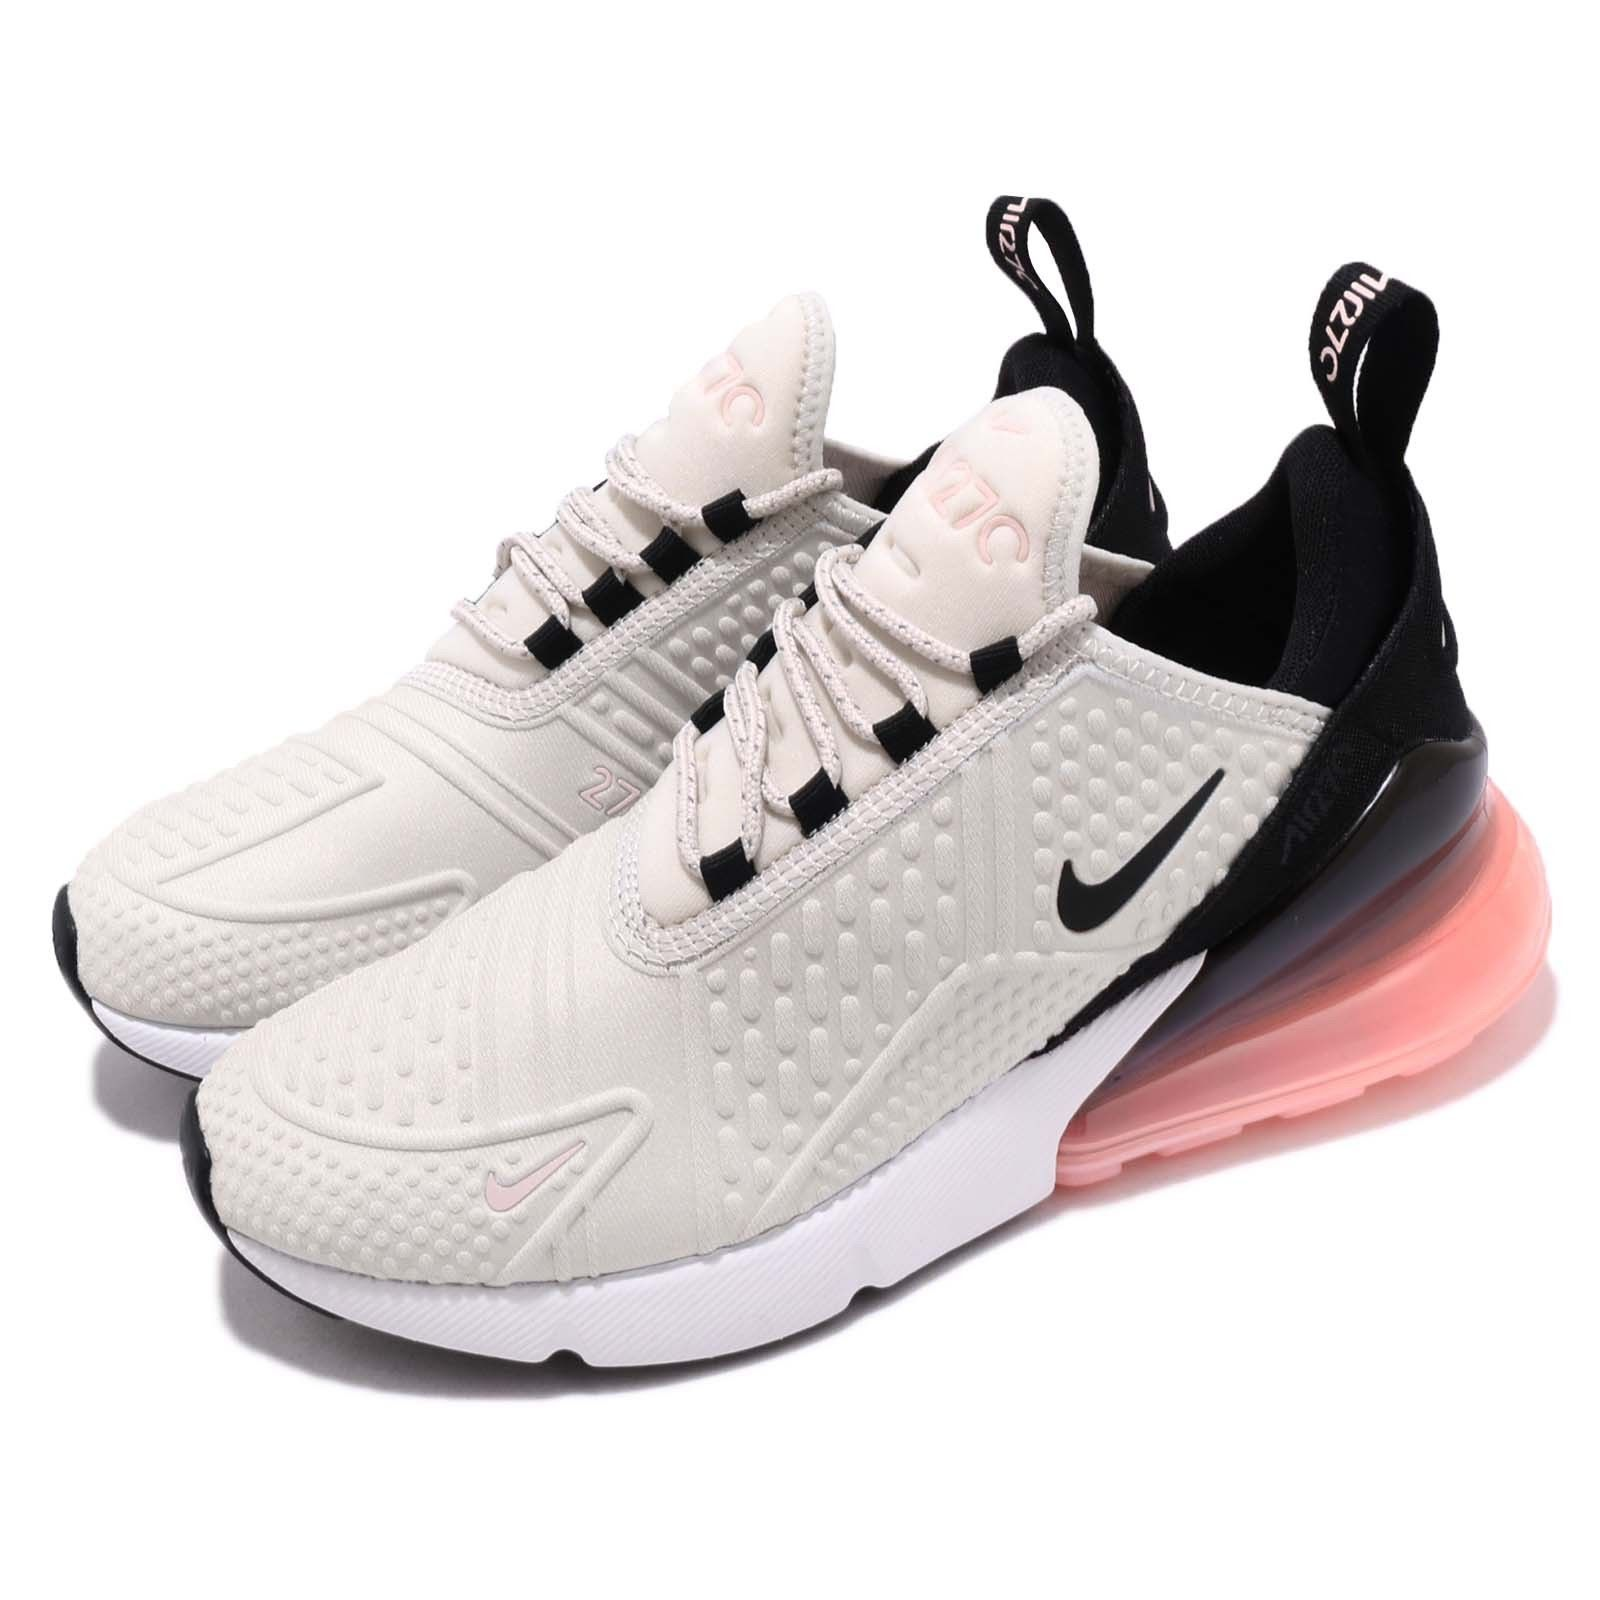 27ce624a47bb5f Details about Nike Air Max 270 SE GS Pink Grey White Kid Youth Women ...